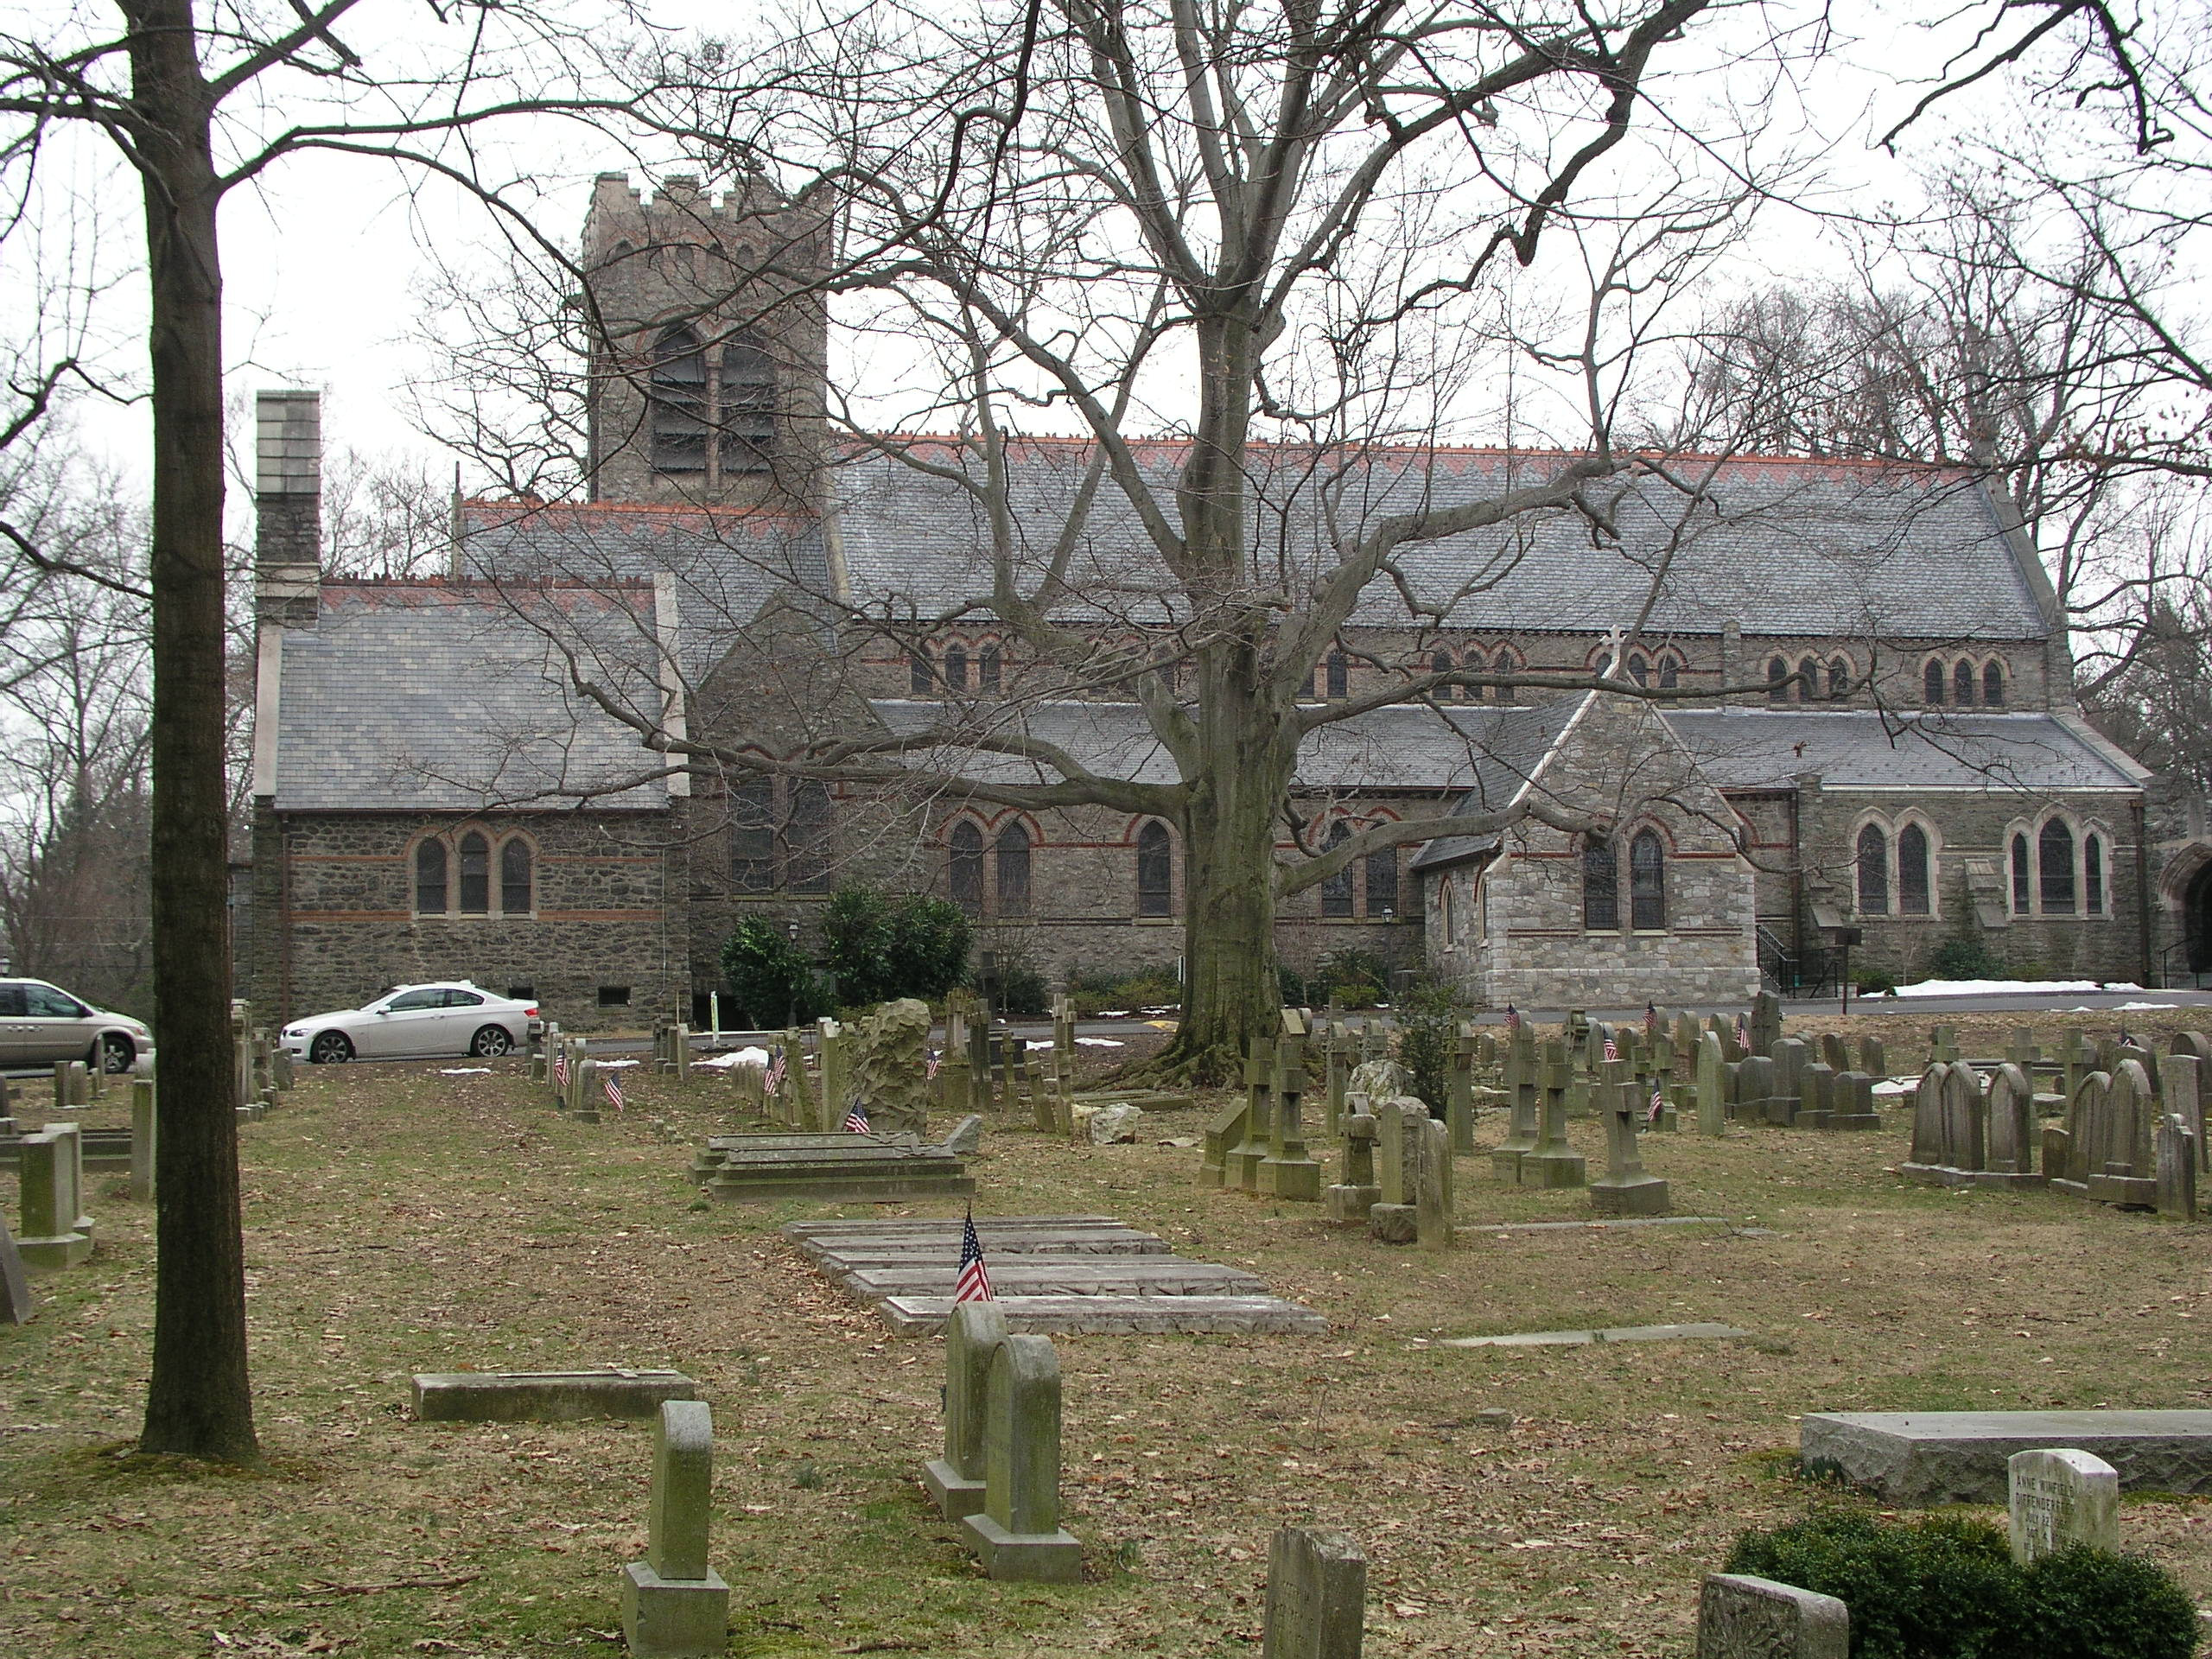 Church of the Redeemer Cemetery